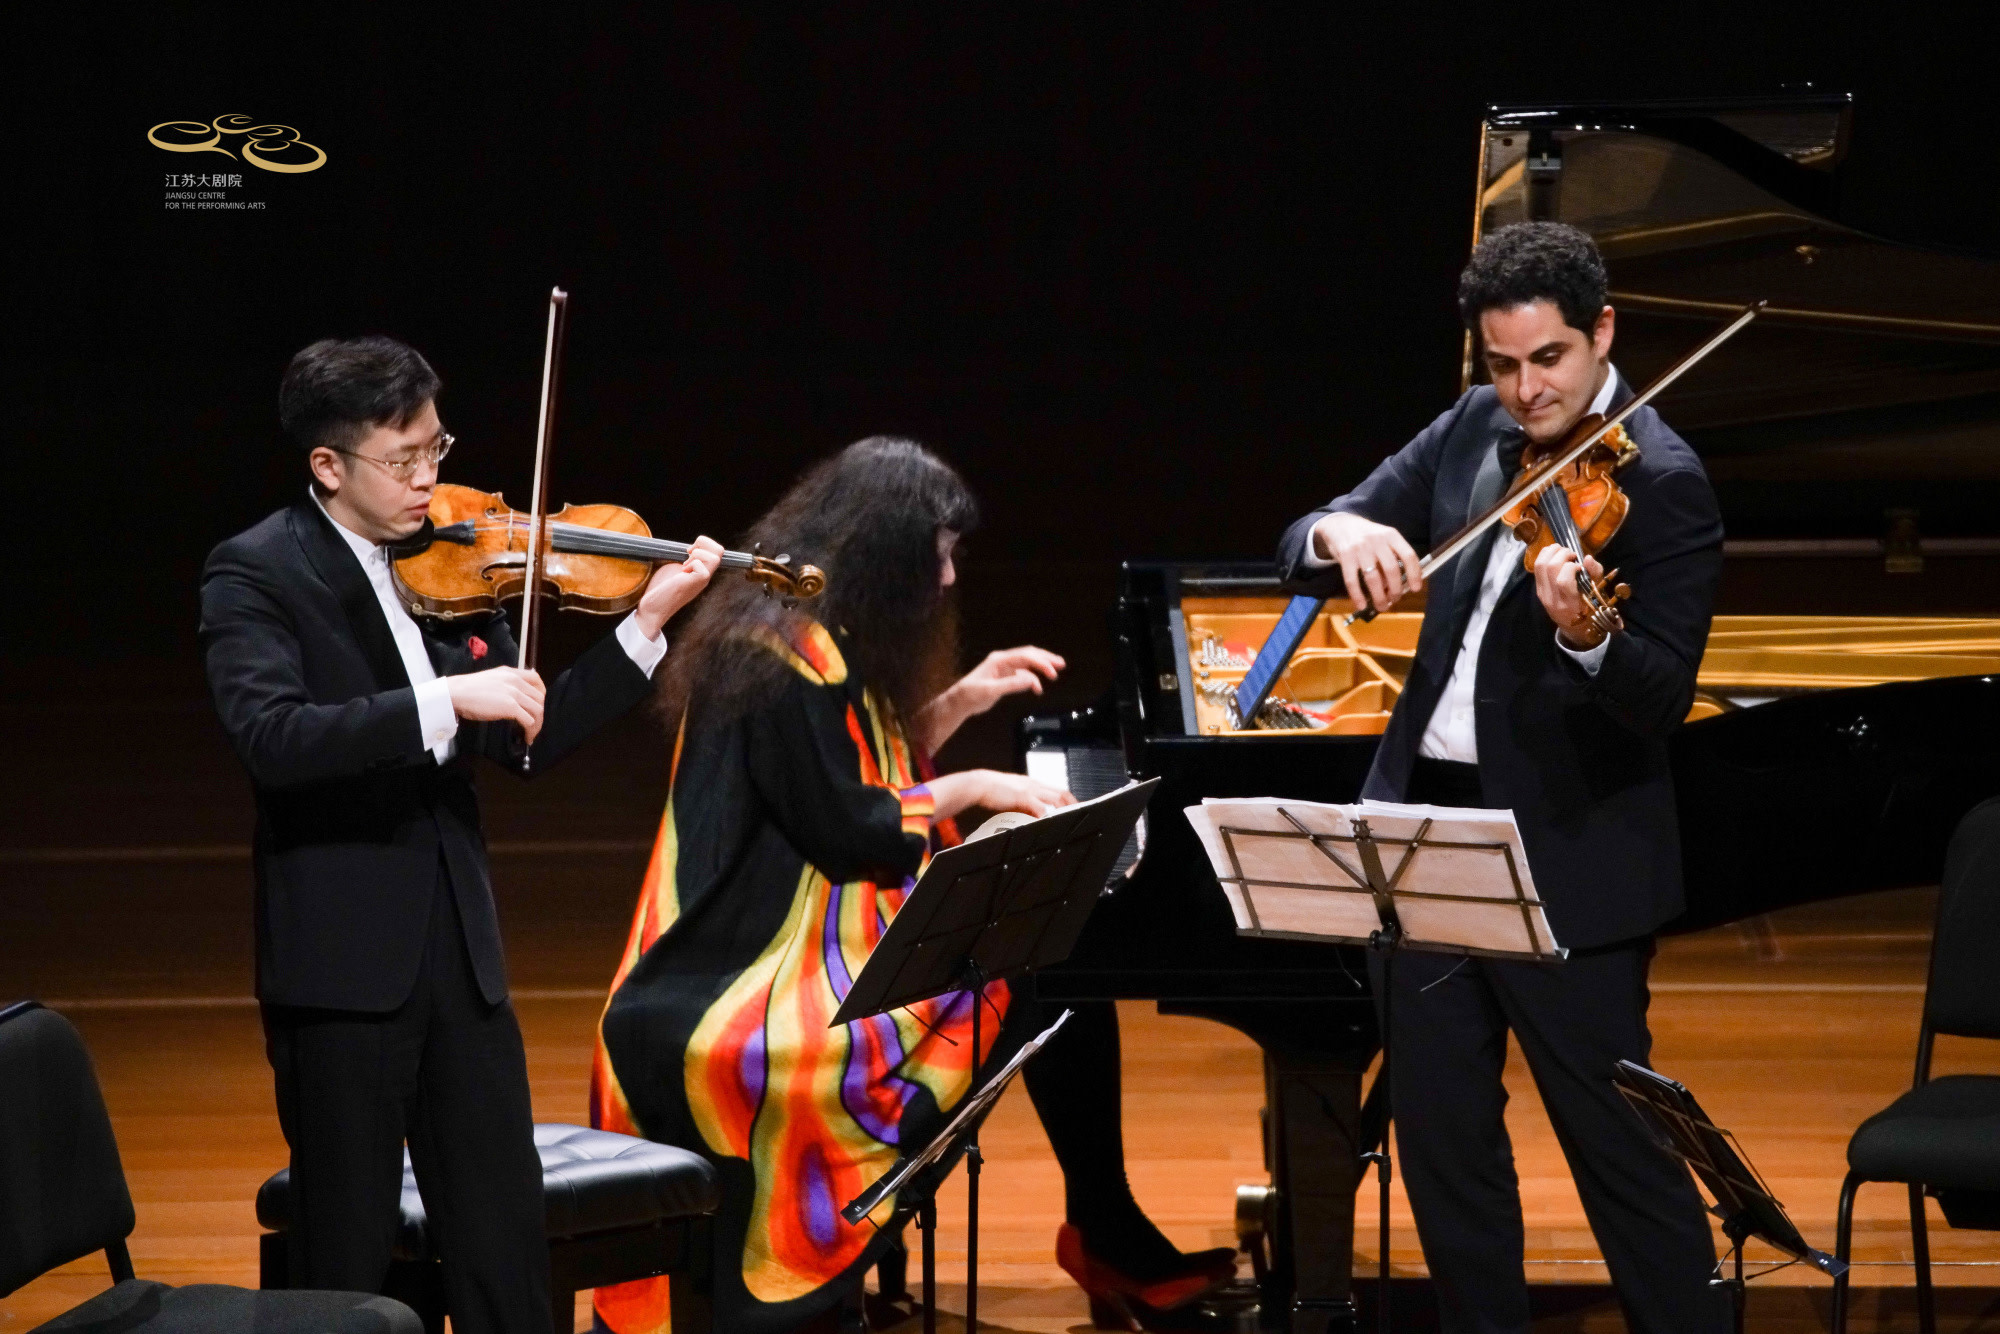 Violinist Paul Huang, pianist Wu Han, violinist Arnaud Sussmann perform at the Jiangsu Centre for the Performing Arts in Nanjing, China.